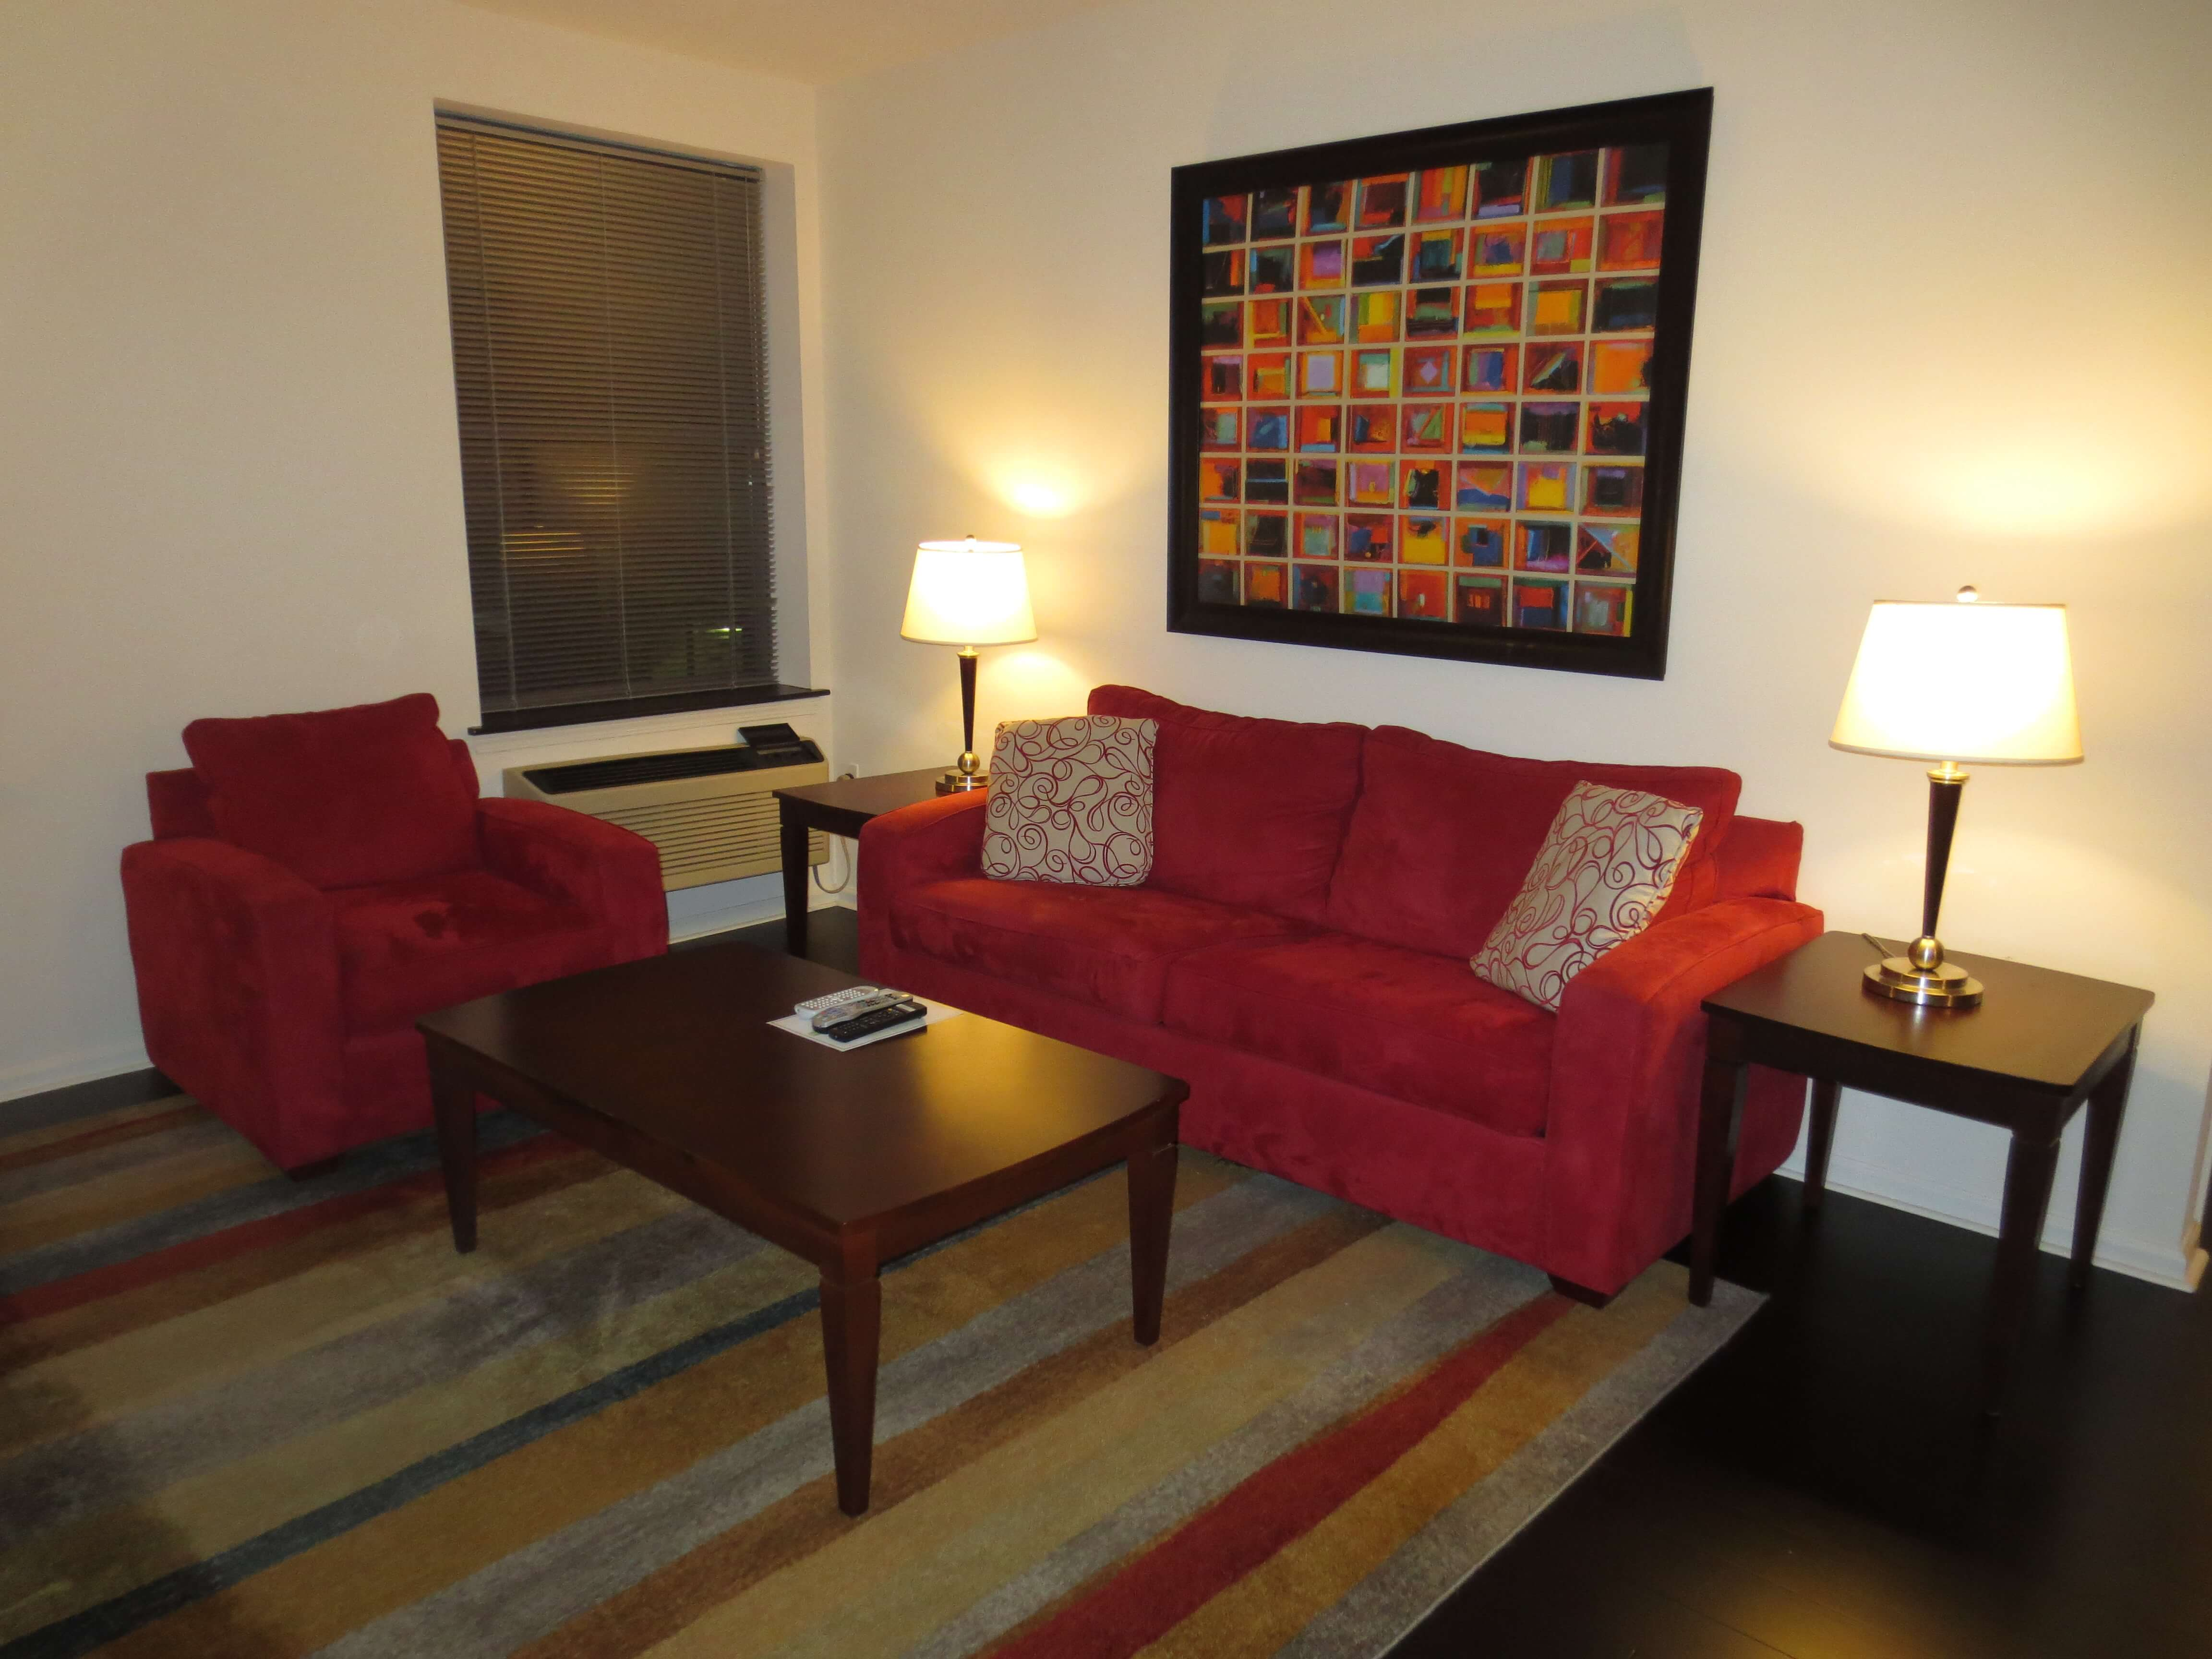 image 5 furnished 2 bedroom Apartment for rent in Morristown, Morris County